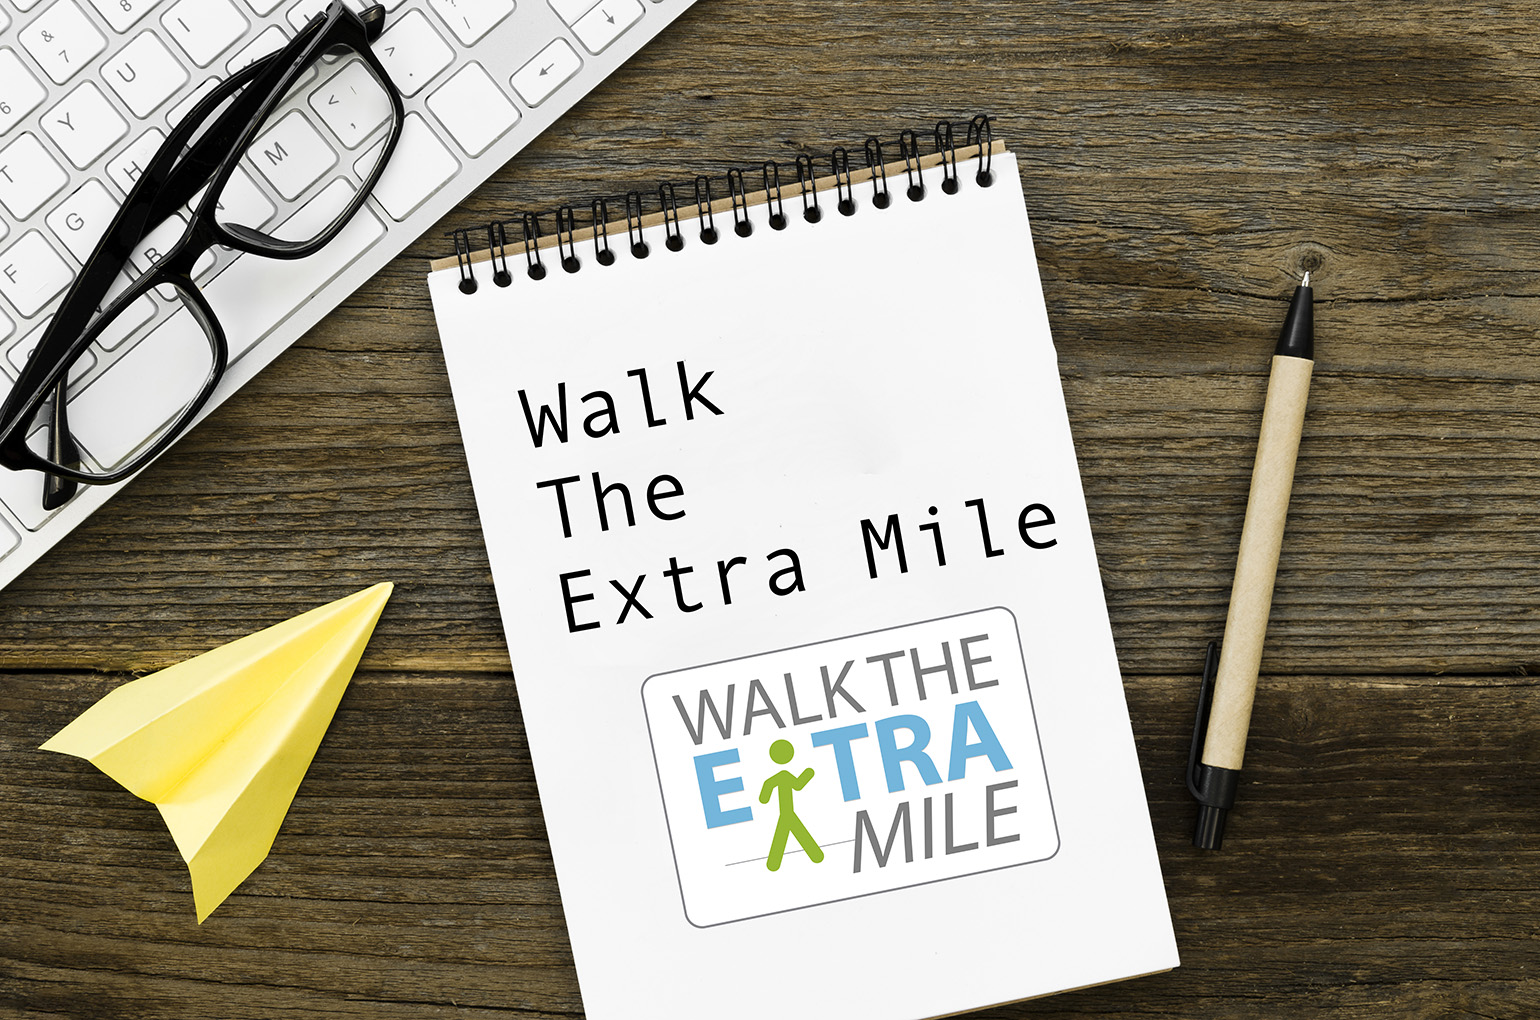 Walking the Extra Mile